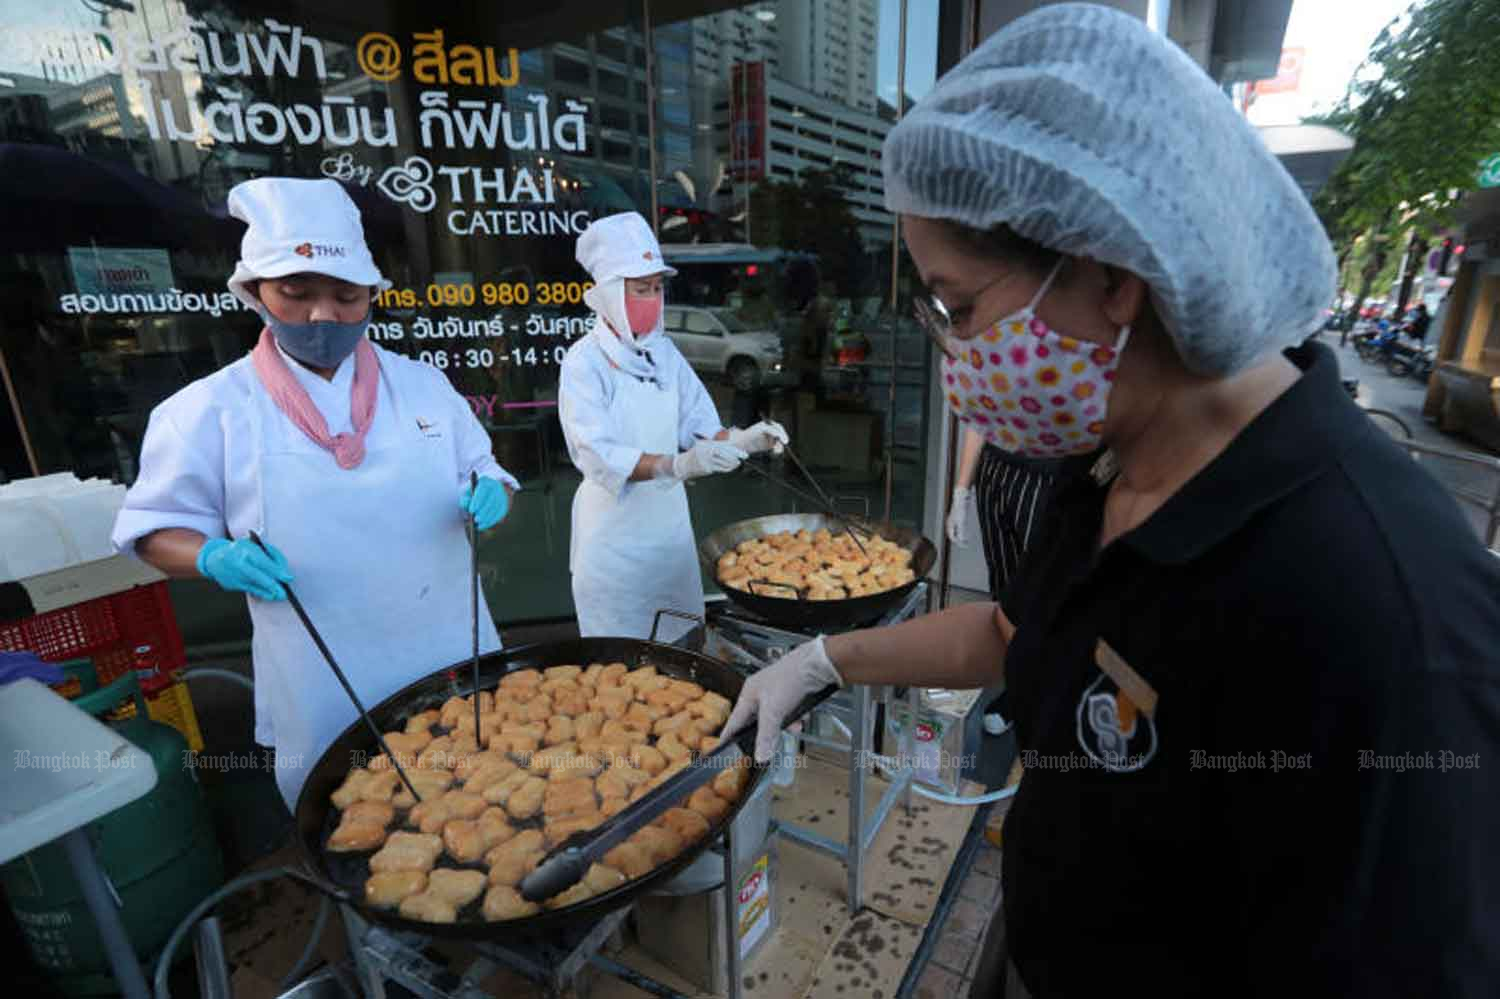 Thai Airways' own deep fried dough, being cooked at its Silom branch outlet on Silom Road, Bangkok, on Friday morning. (Photo: Chanat Katanyu)